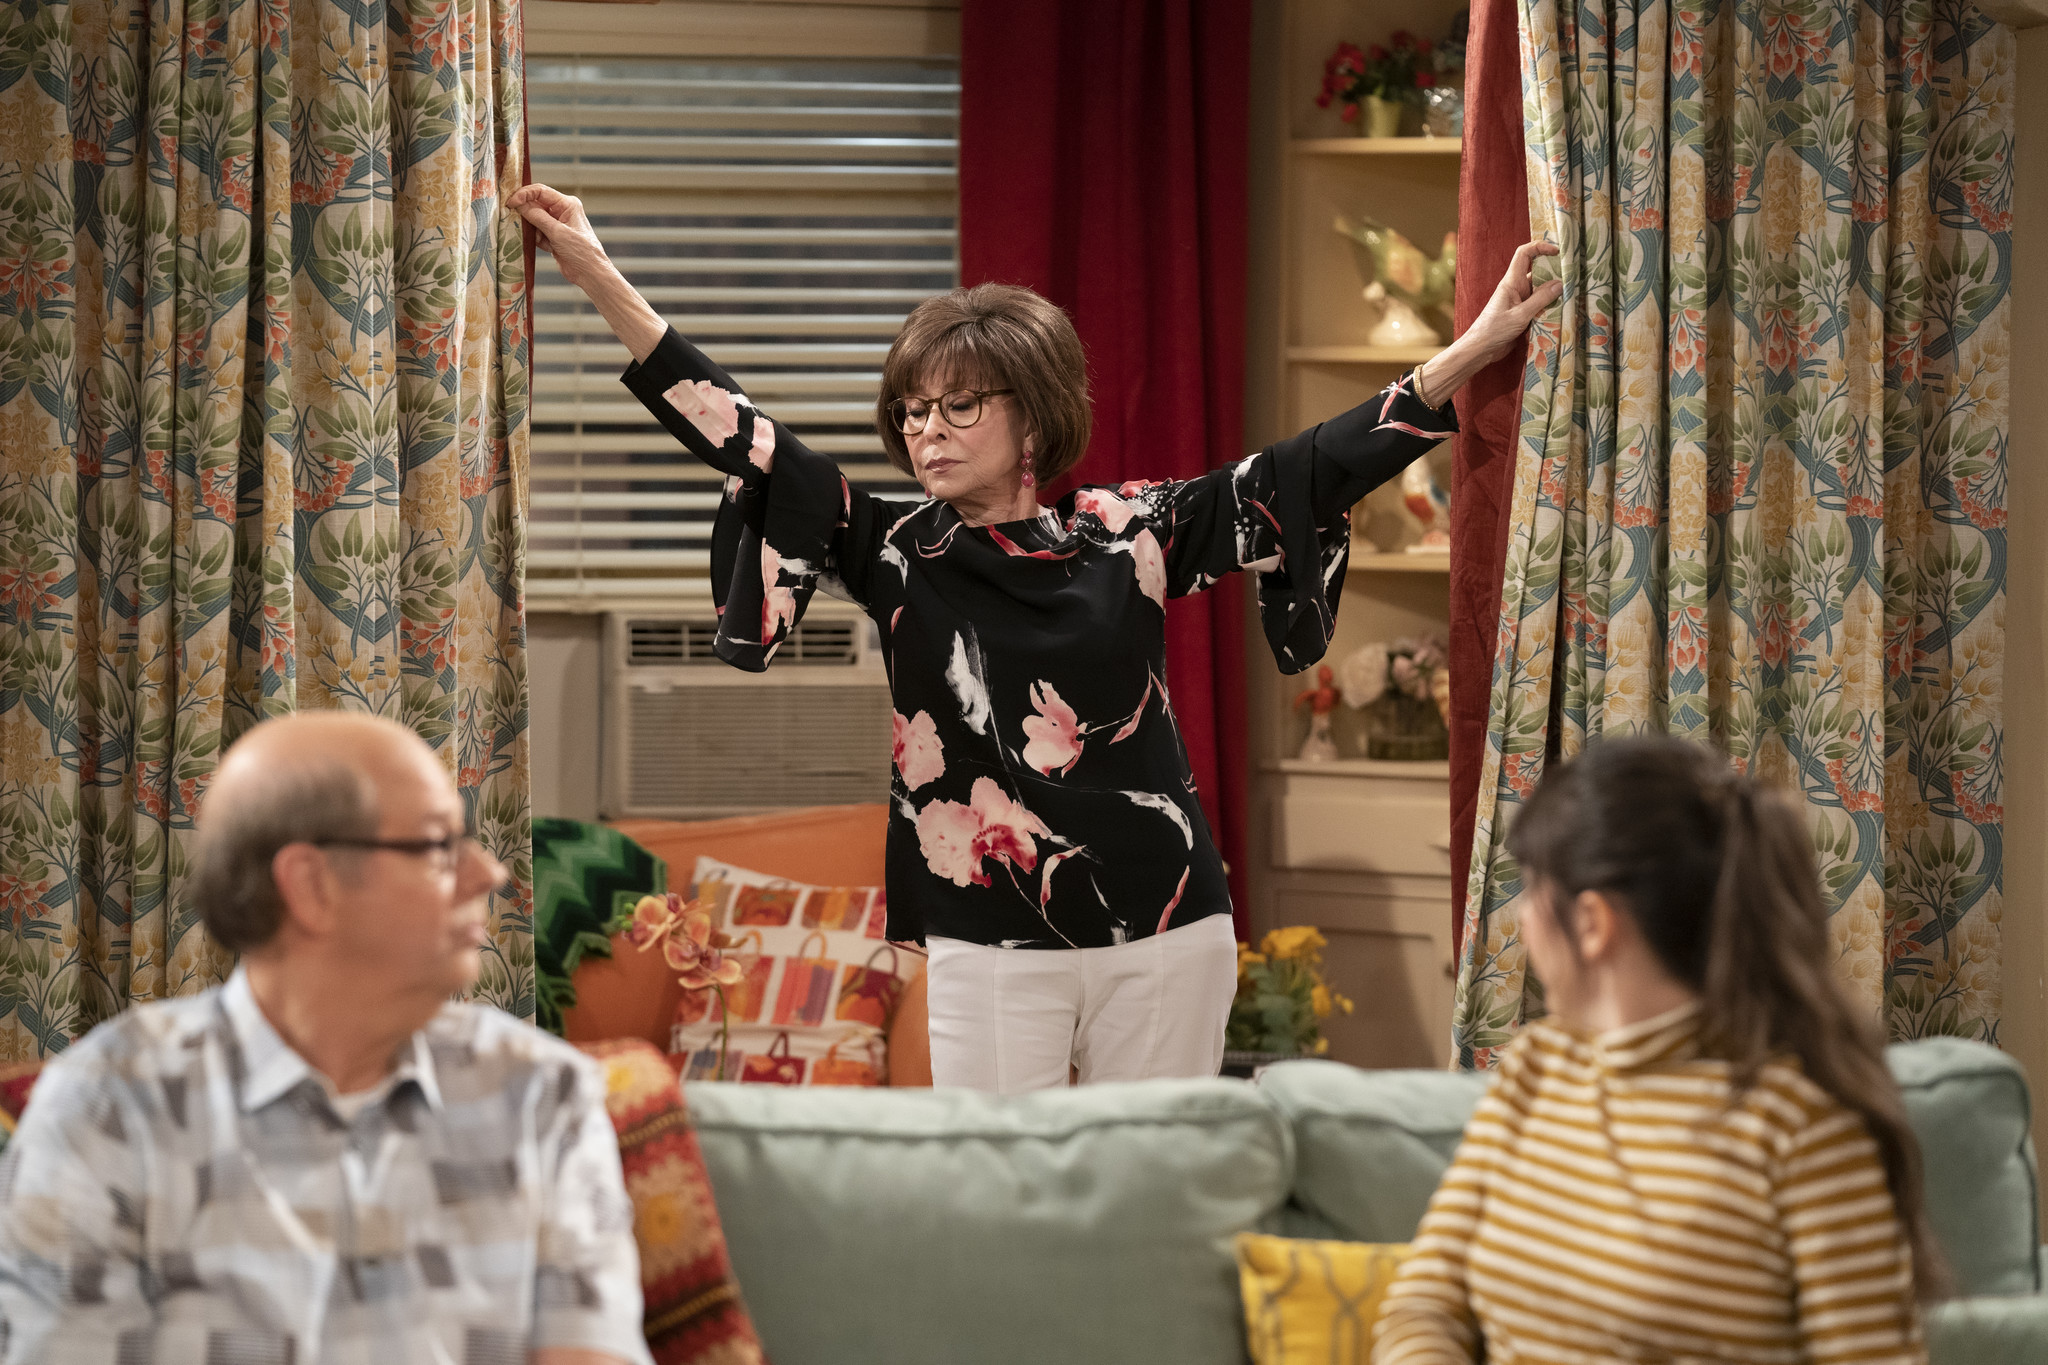 'One Day at a Time' returns with its 'universal' Latino story